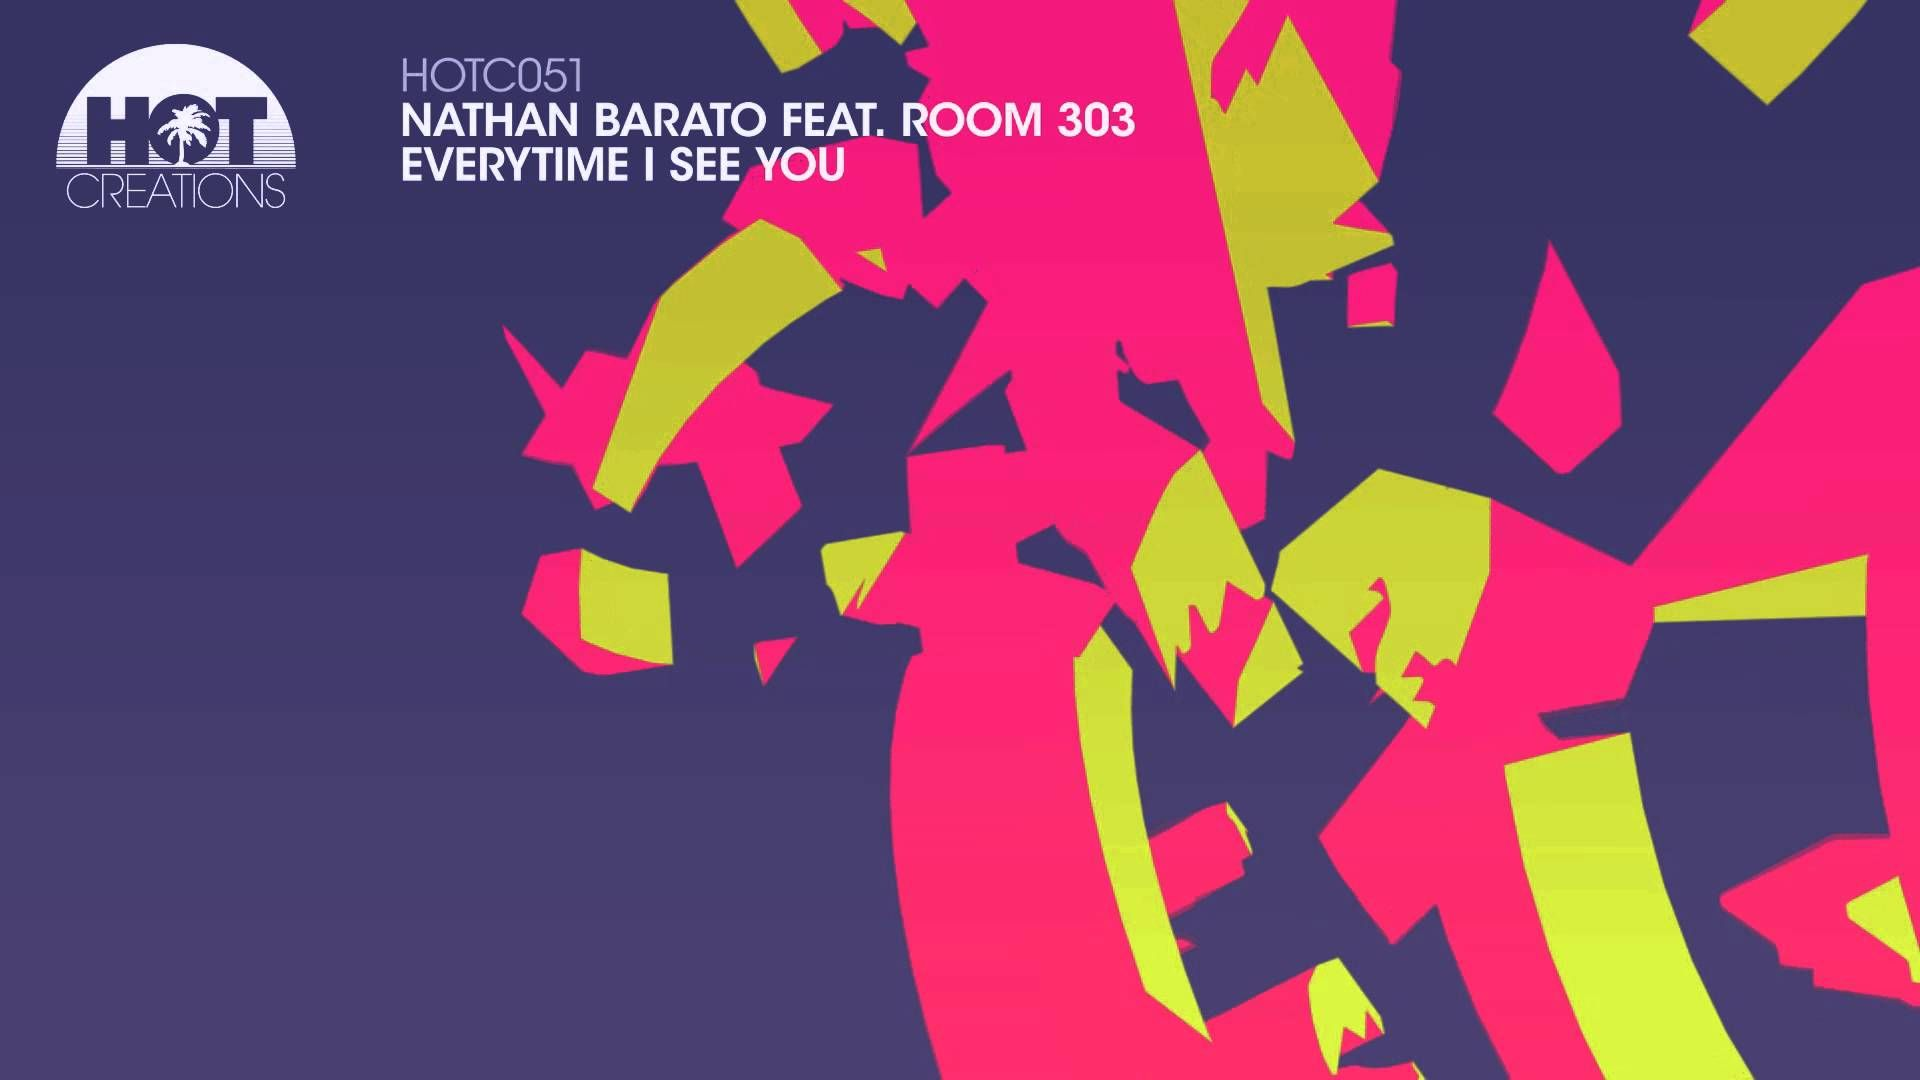 'Everytime I See You' Nathan Barato feat. Room 303 (Original Mix) FULL T...